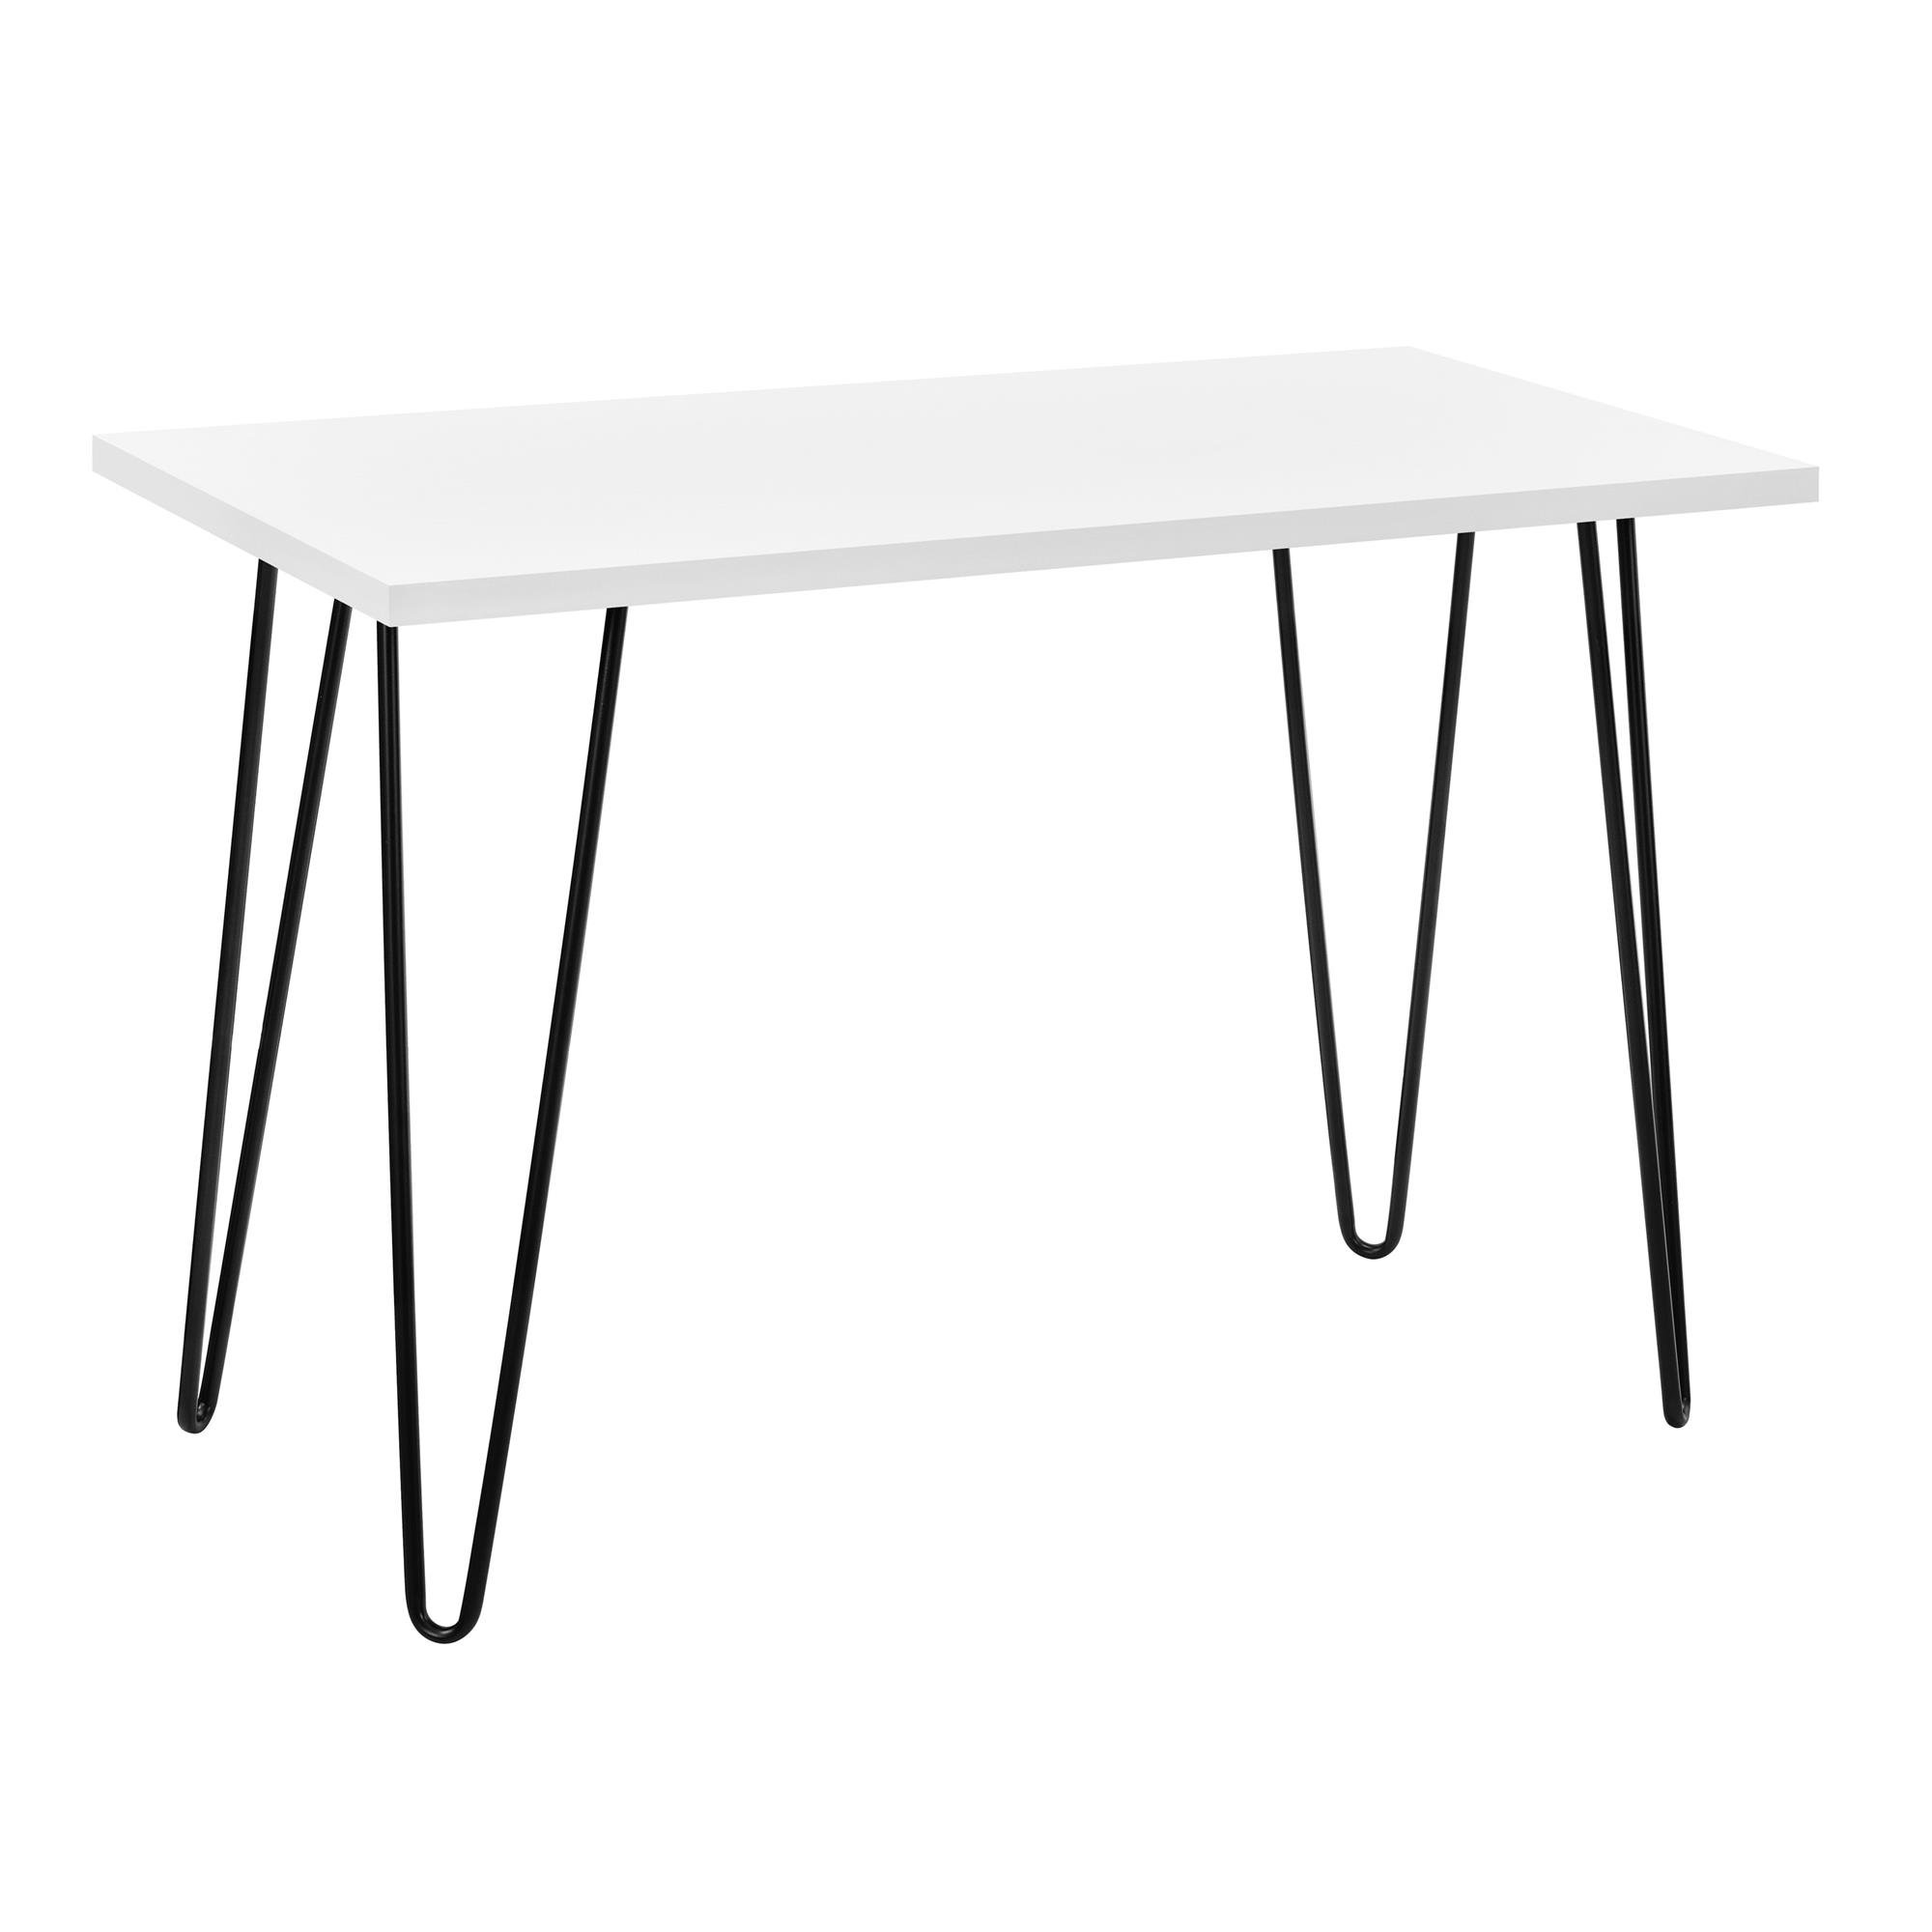 Ameriwood Home 9327015COM Owen Collection Retro Desk, White by Ameriwood Home